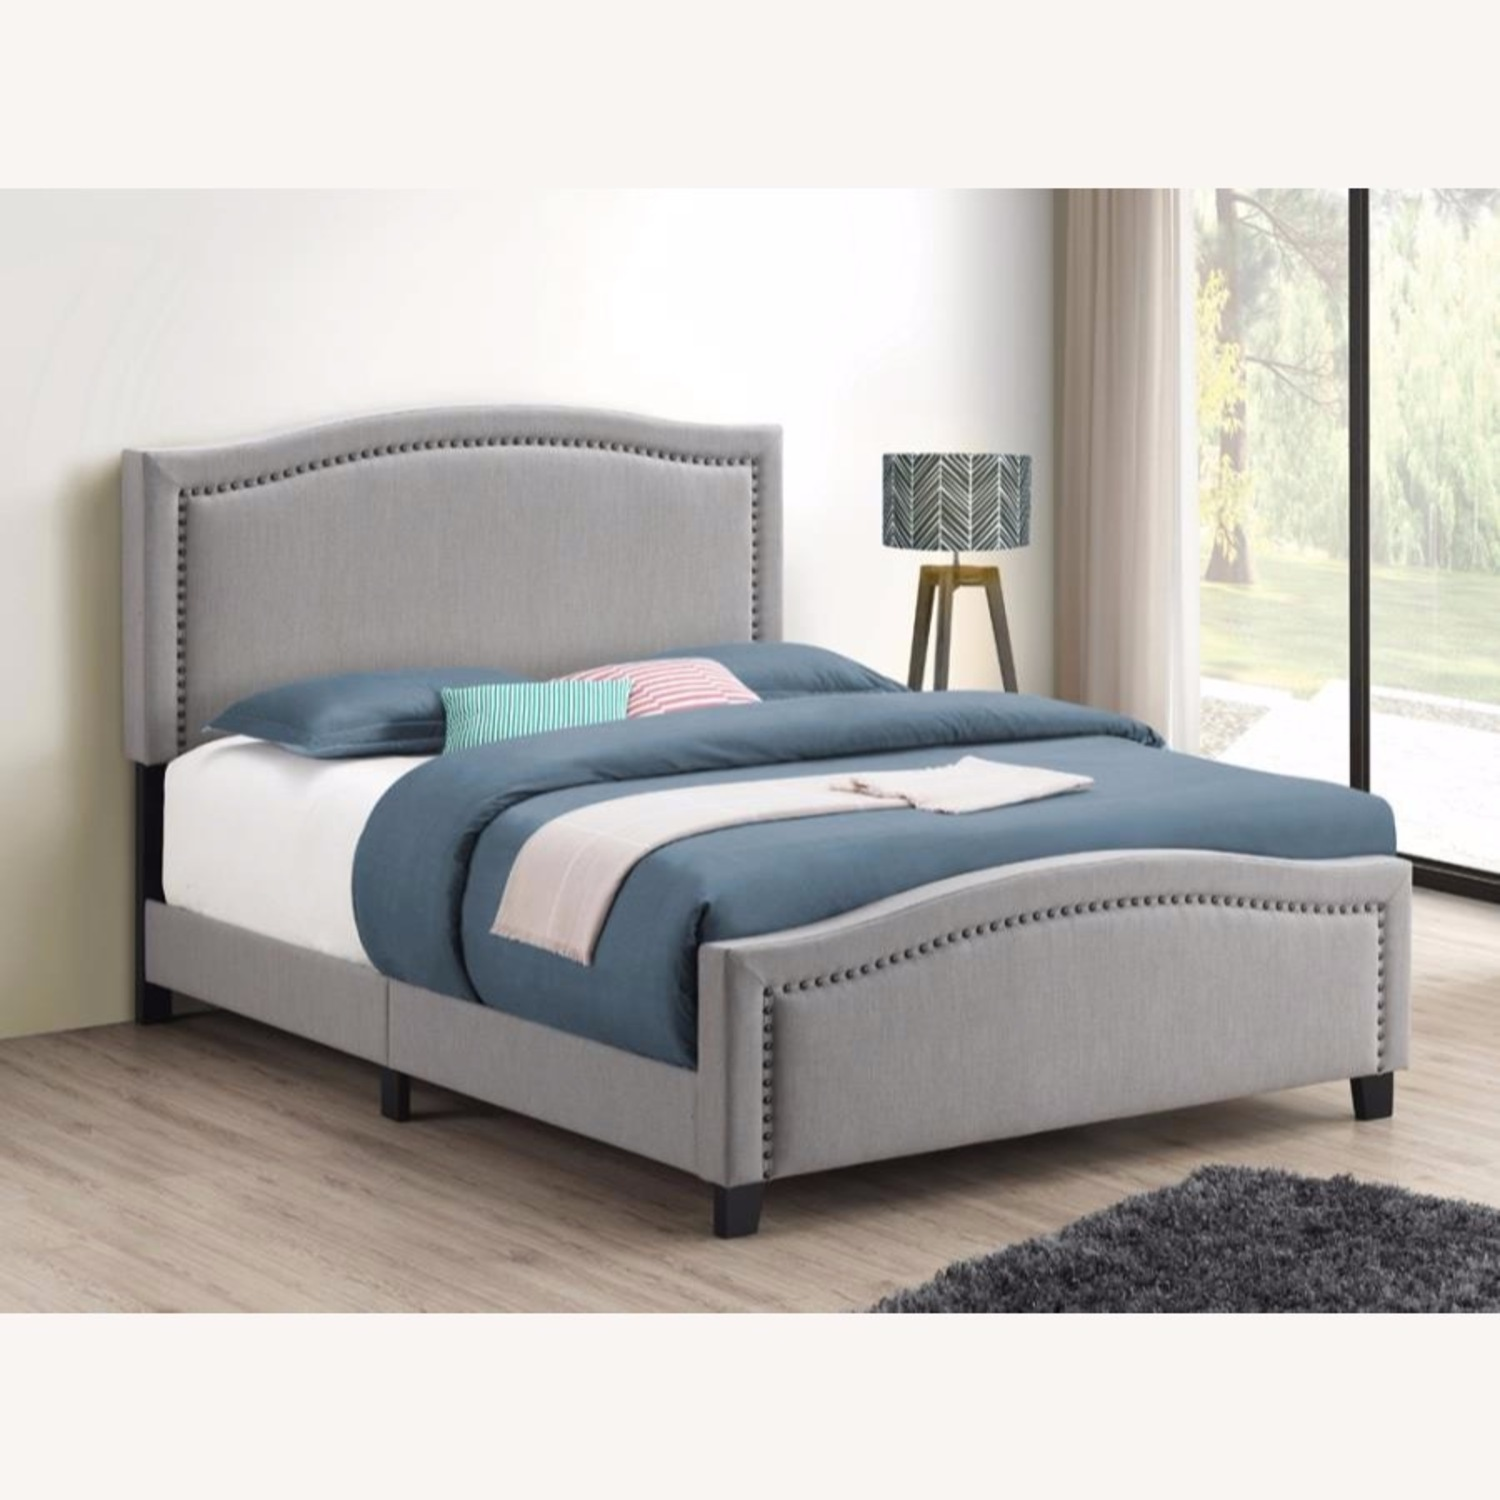 Modern King Bed In Mineral Colored Fabric - image-4